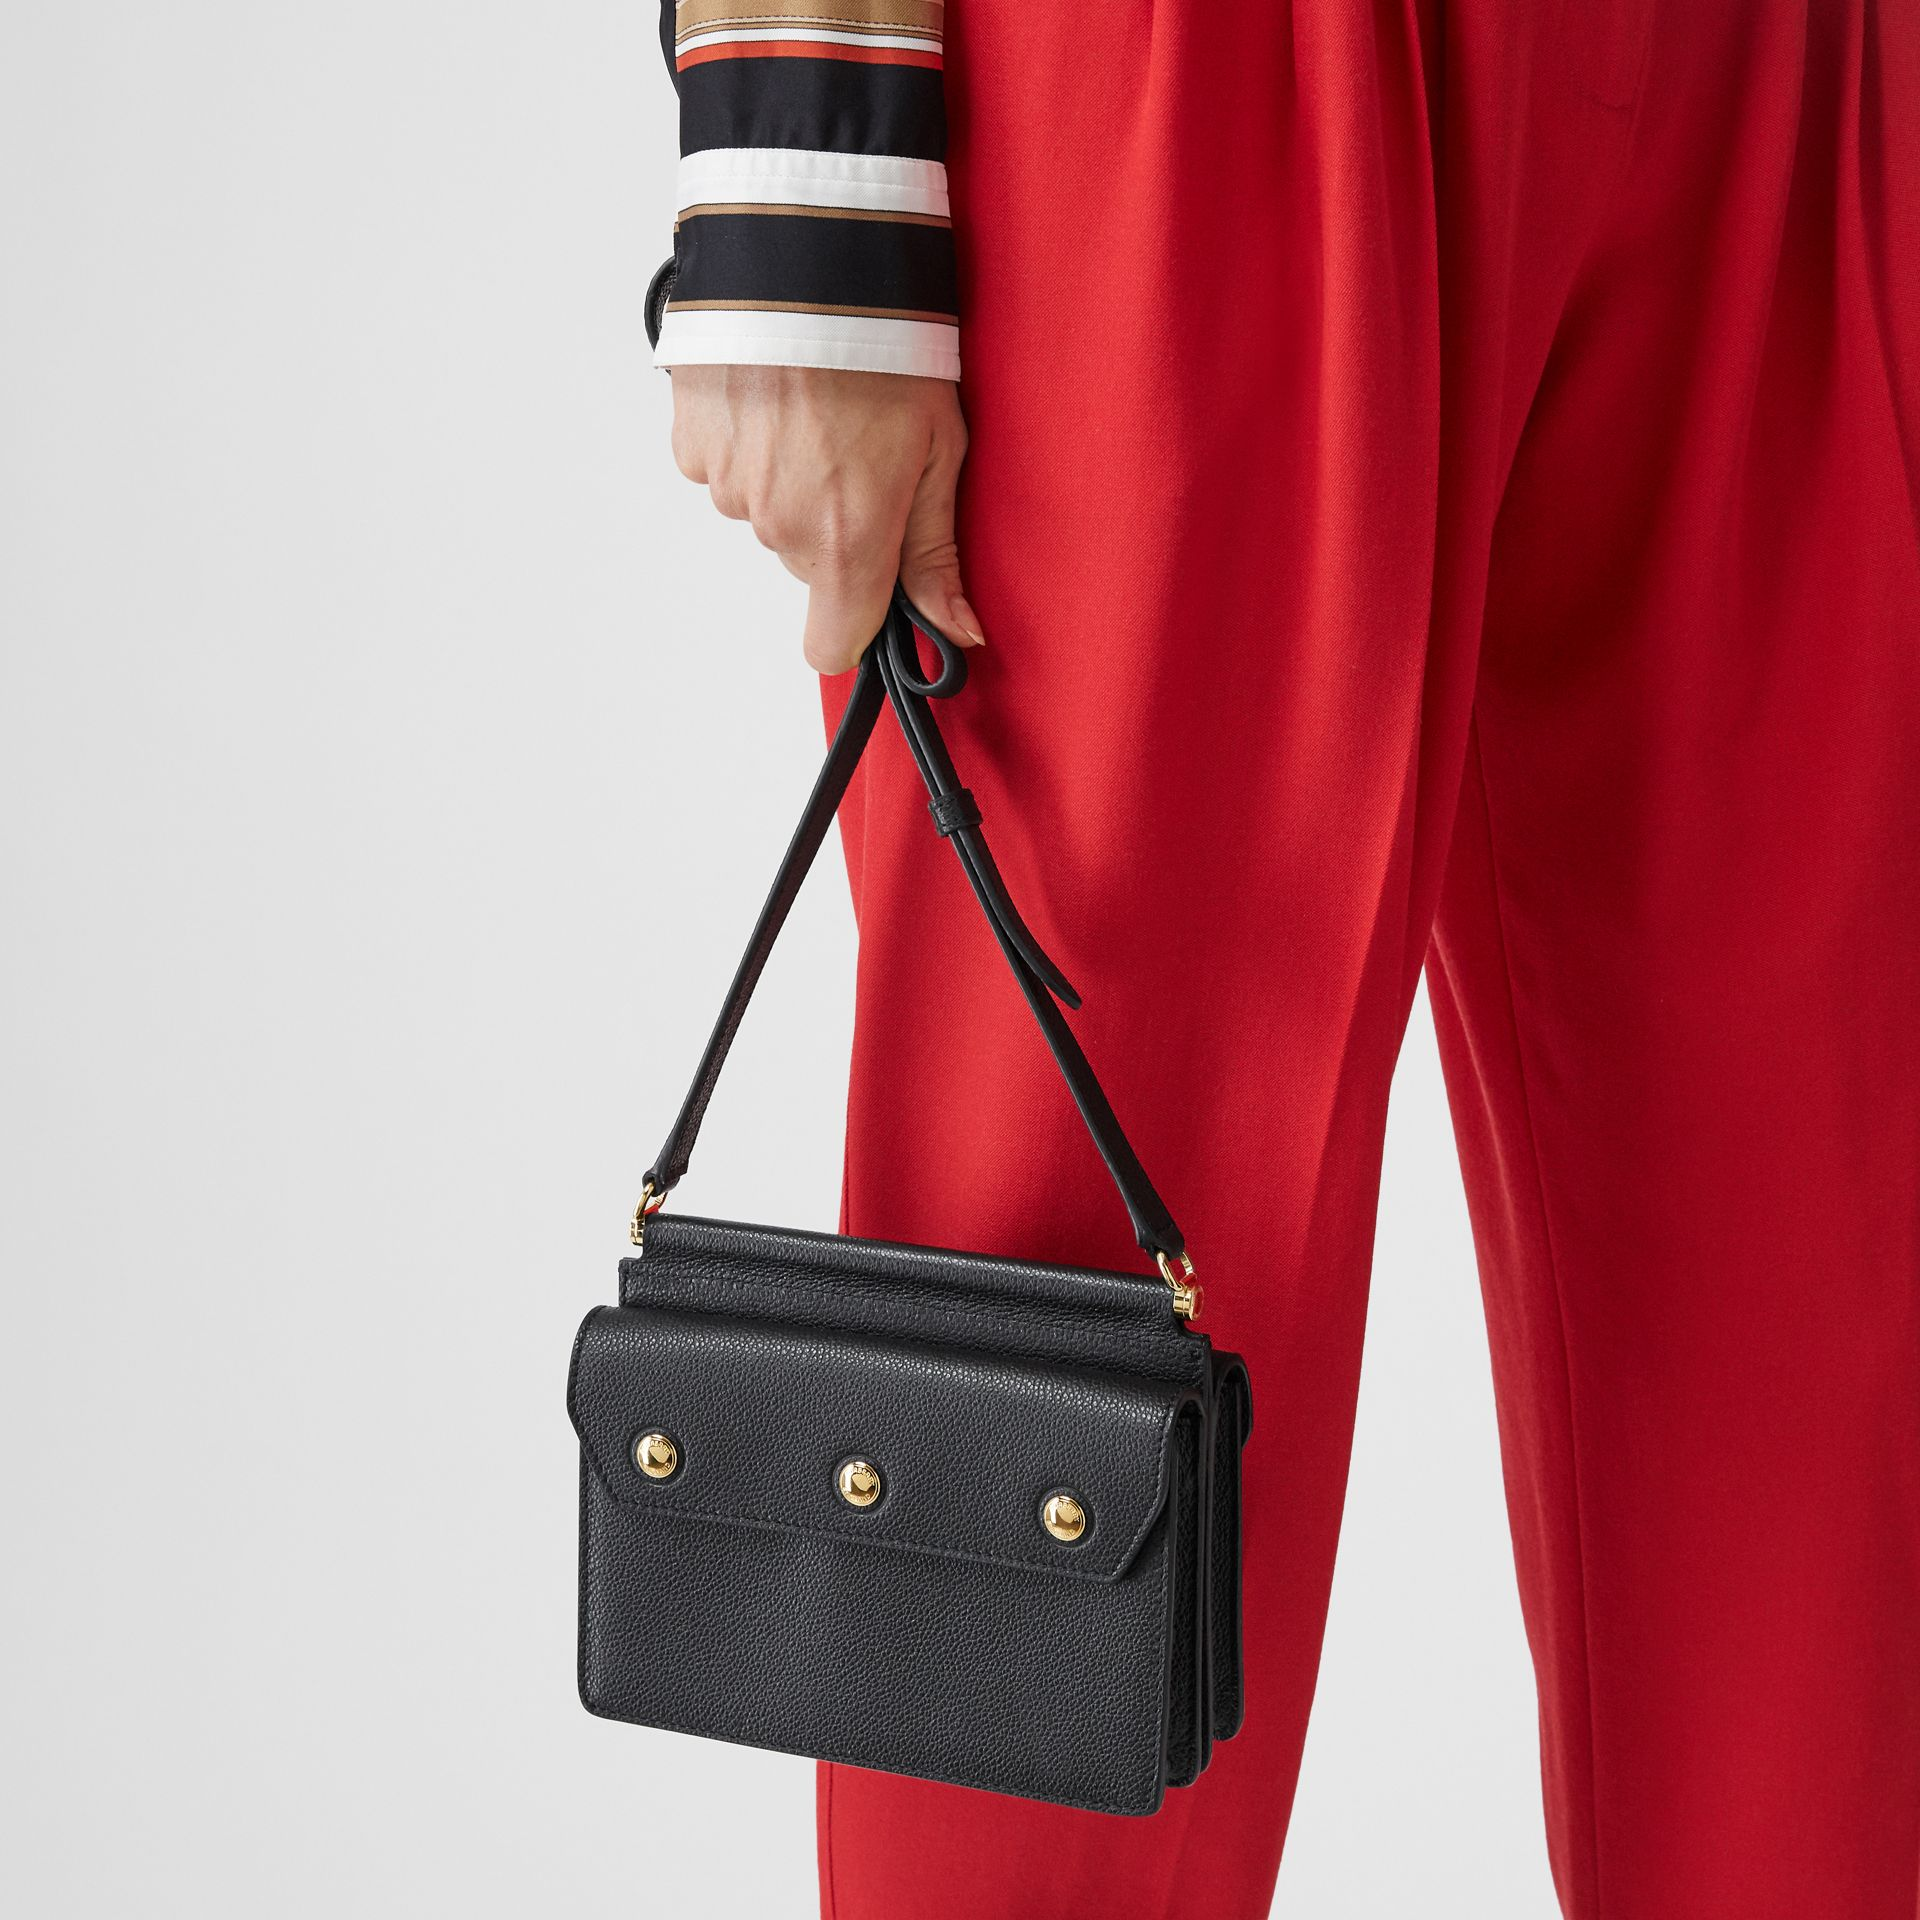 Mini Leather Title Bag with Pocket Detail in Black - Women | Burberry United States - gallery image 2